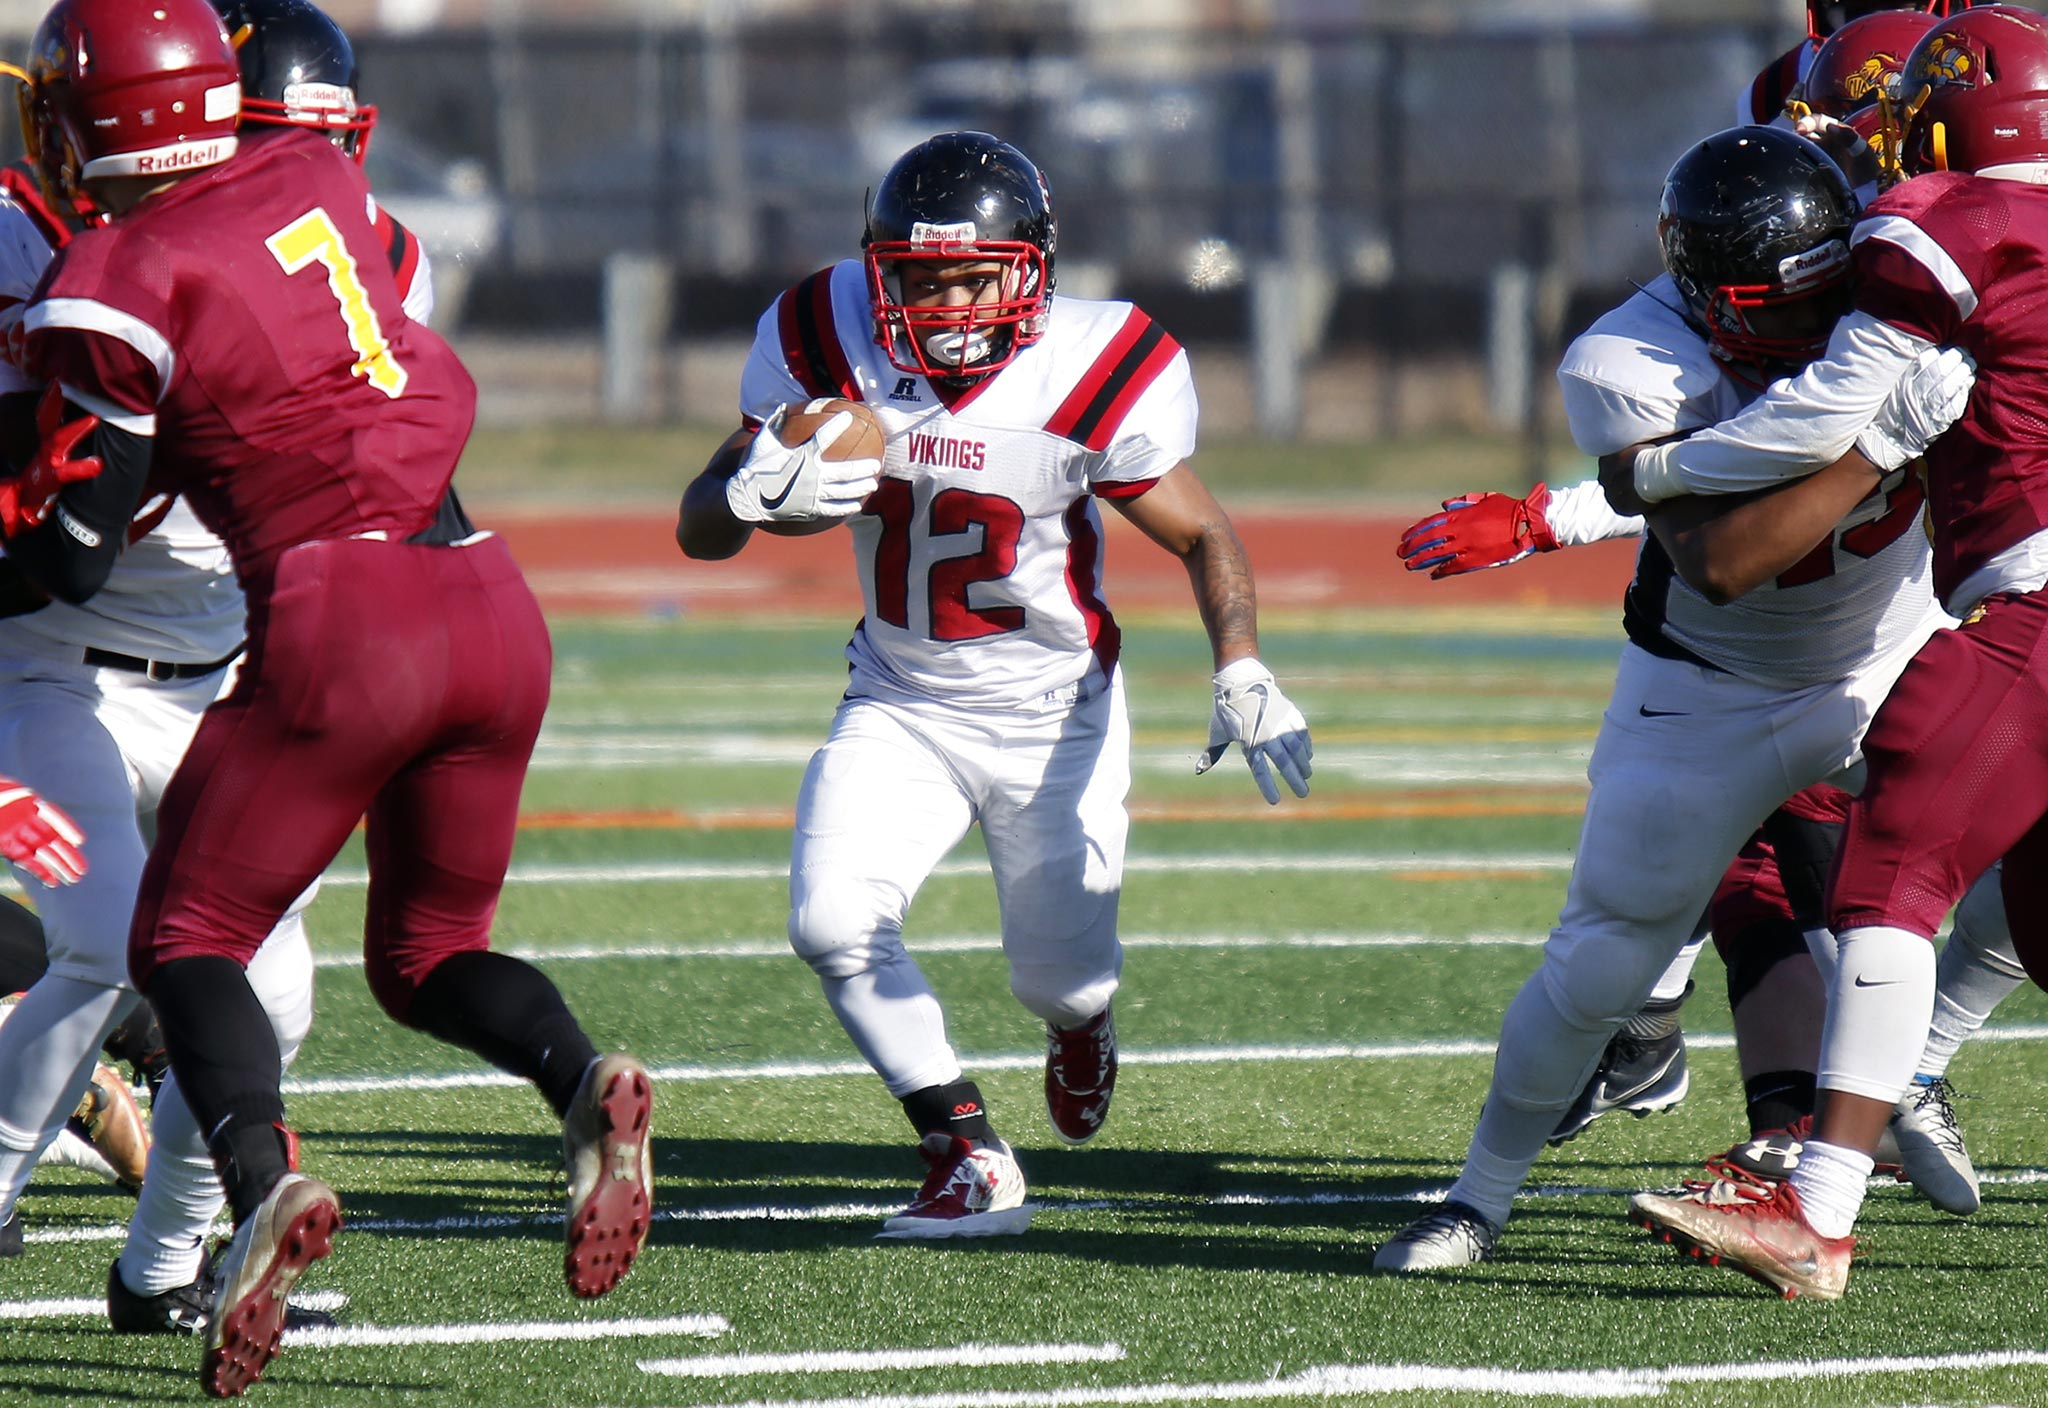 Northeast running back Daniel Scott finds an opening against Central in the first quarter of the teams´ annual Thanksgiving Day football game Thursday, Nov. 23, 2017, at Northeast. The host Vikings went on to win, 28-0.